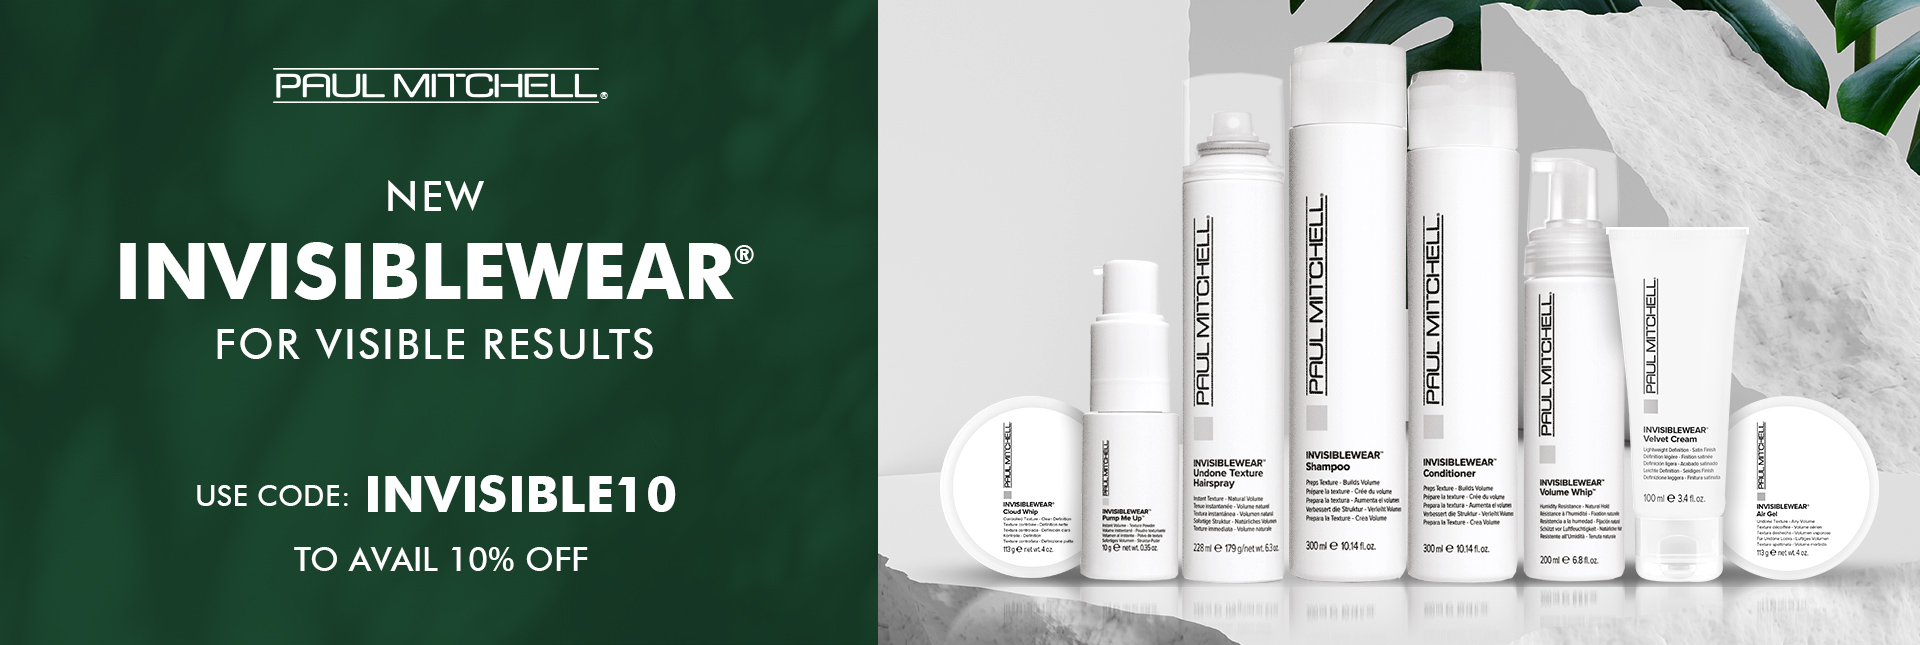 Paul Mitchell Invisiblewear